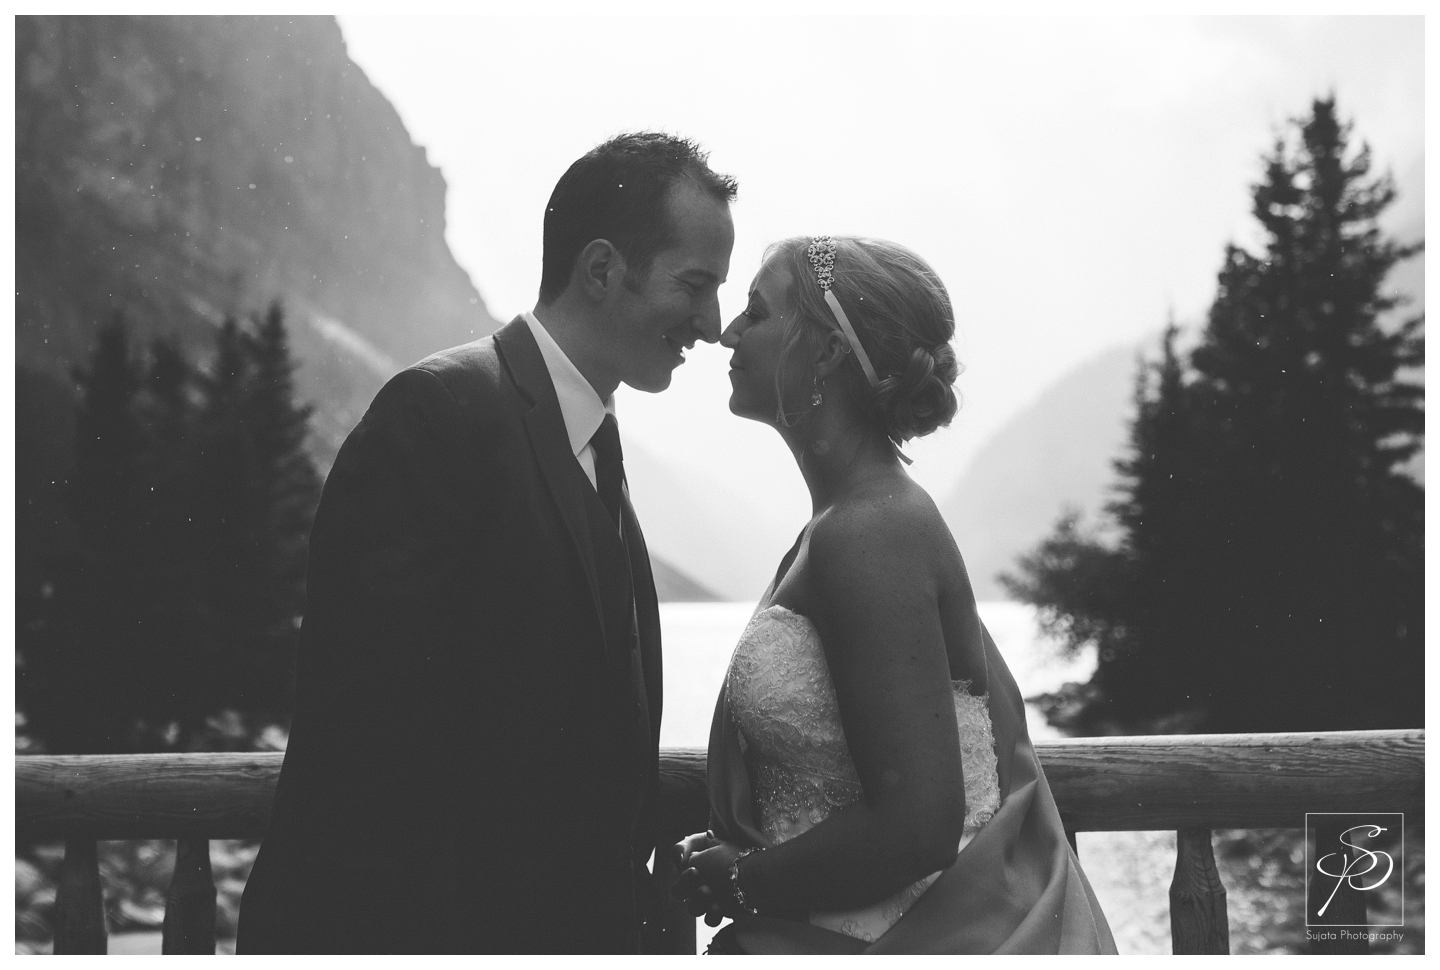 Bride and groom in summer snow storm at lake louise in Banff